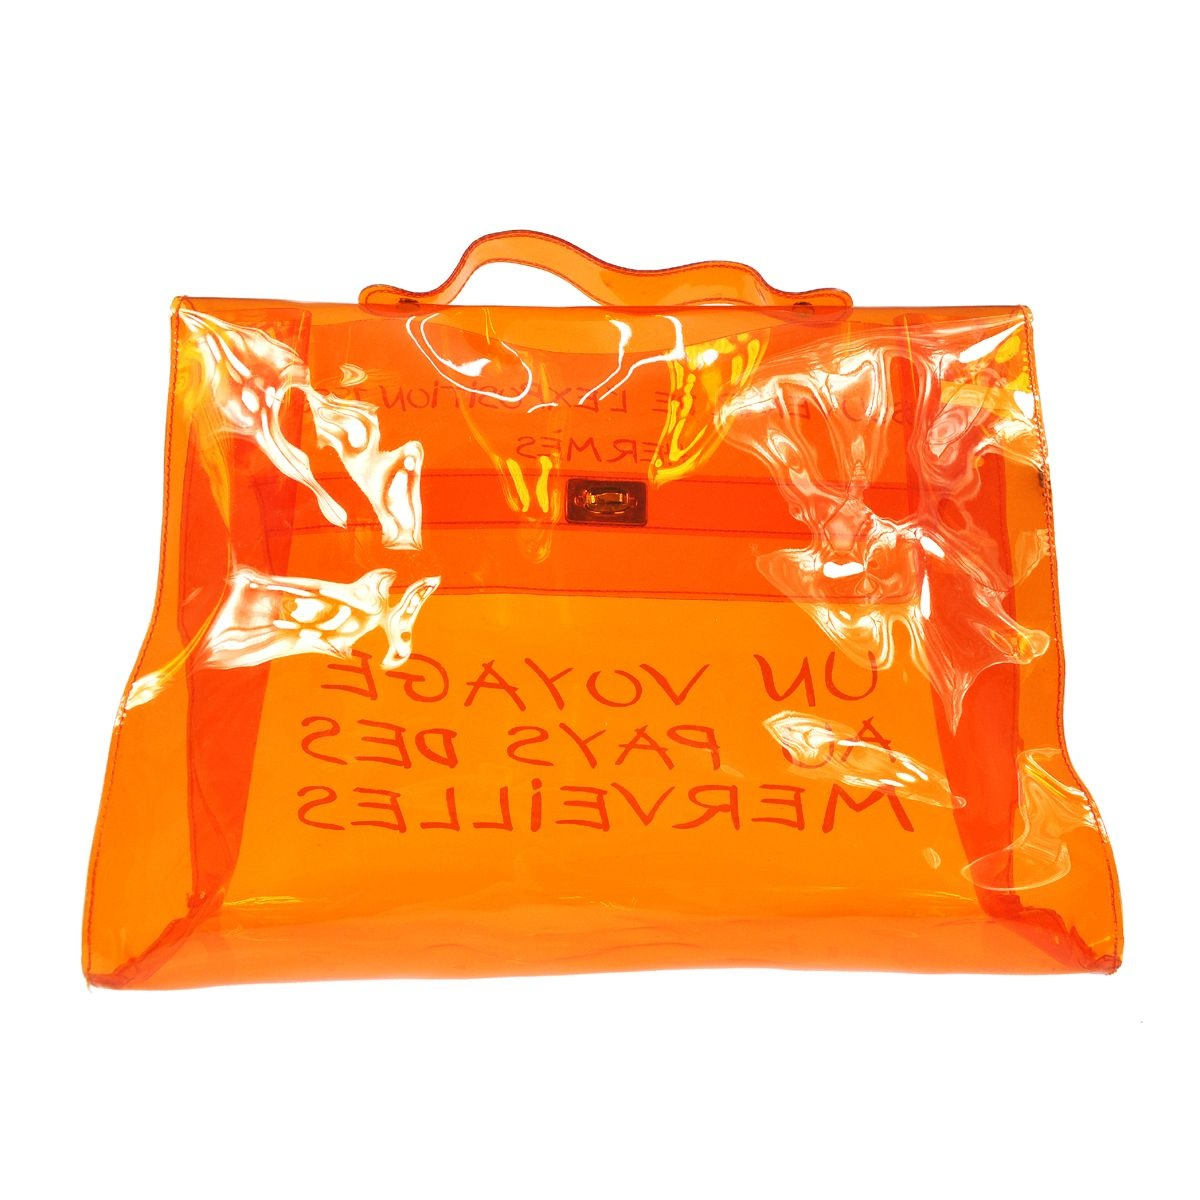 Hermes Souvenir de L'exposition 1997 Kelly in Orange Vinyl